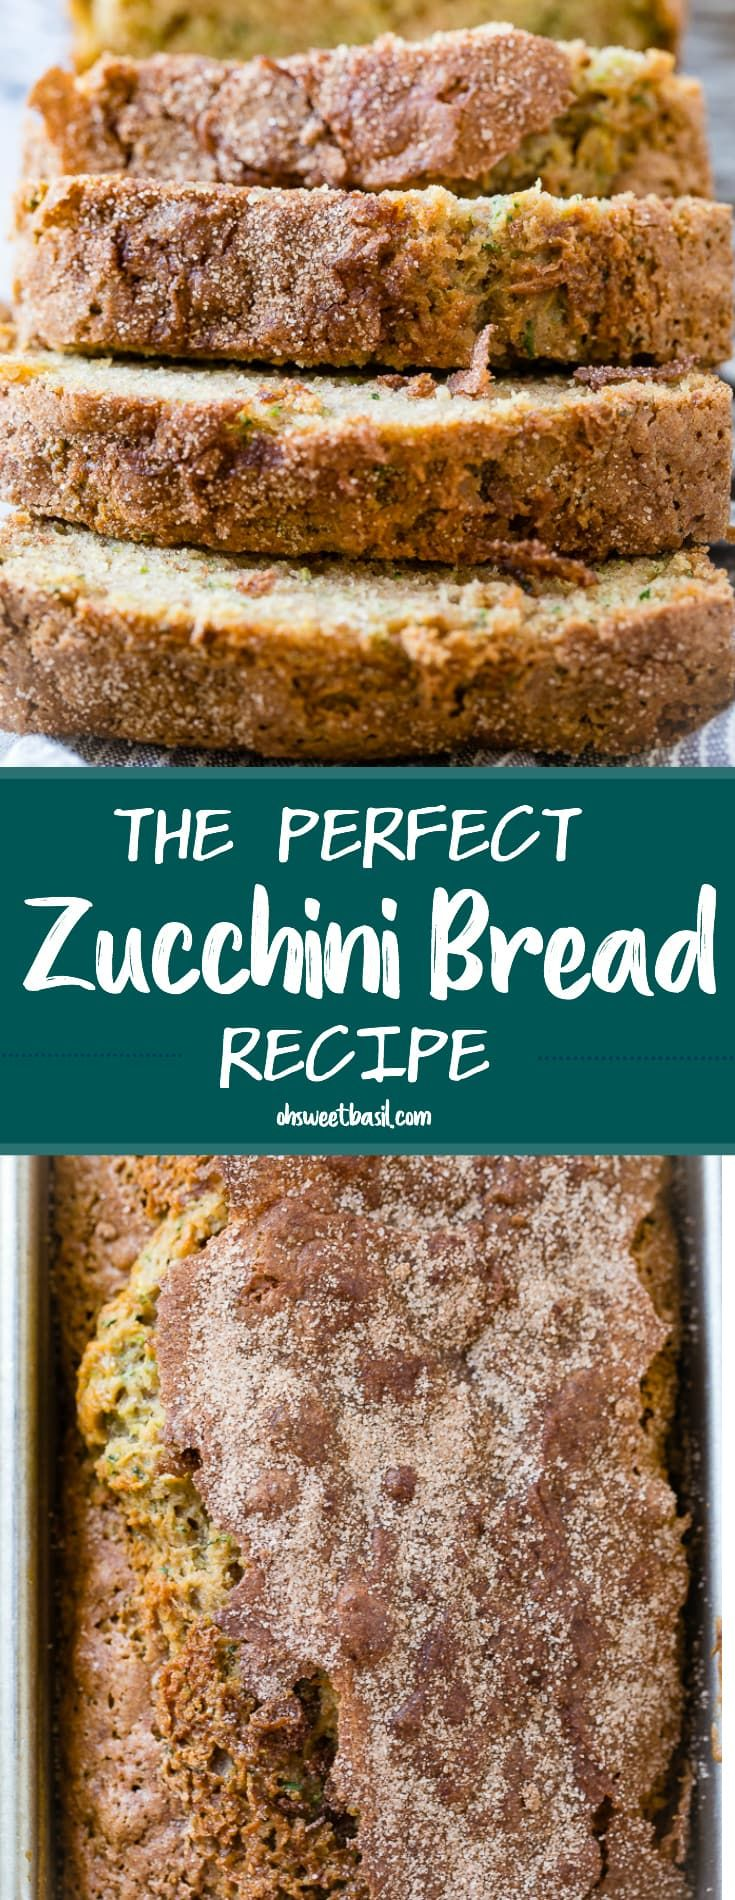 I hated zucchini bread when I was little I searched for years for a recipe Id love as an adult and can honestly say this is The Perfect Zucchini Bread Recipe